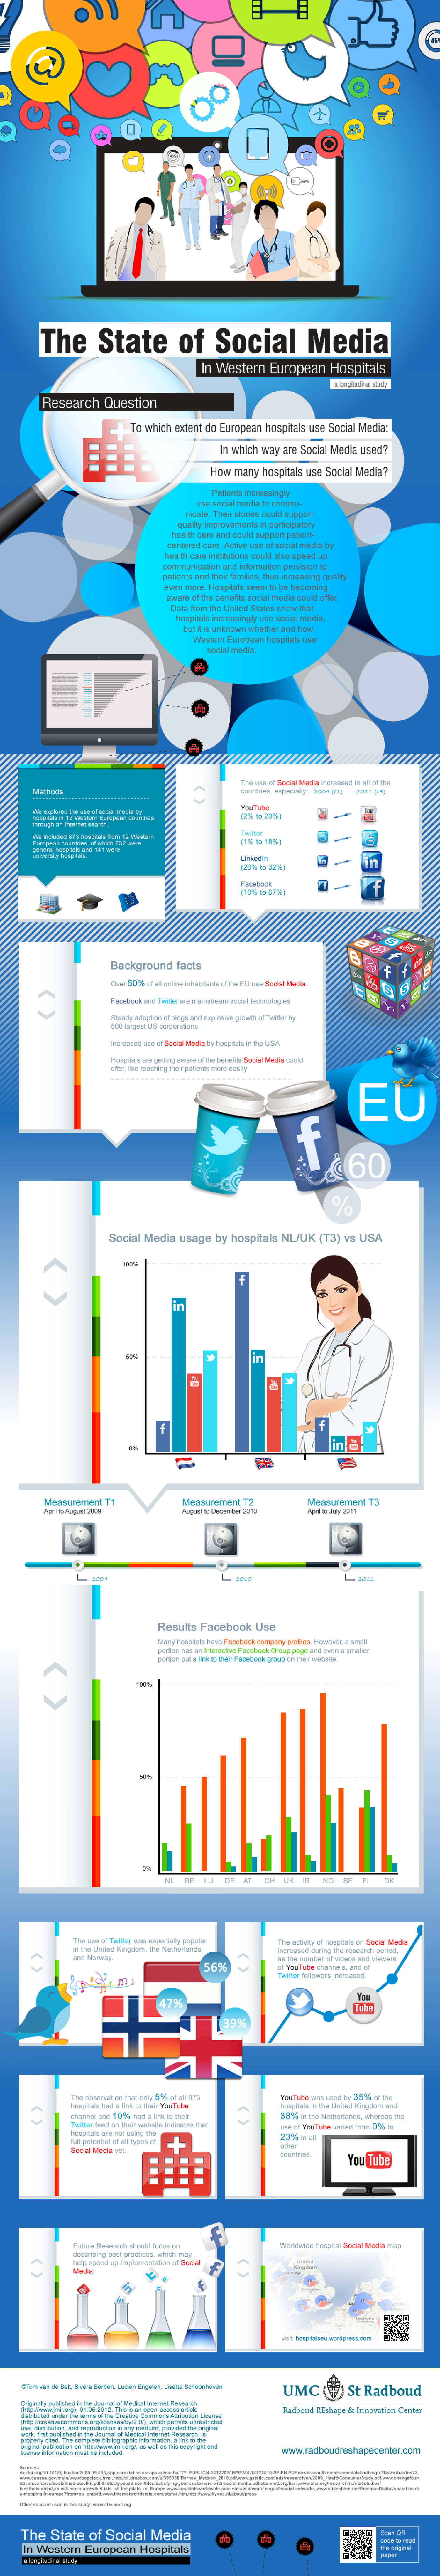 Health Care Social Media: Hospitals in Europe Embrace Social Media Infographic